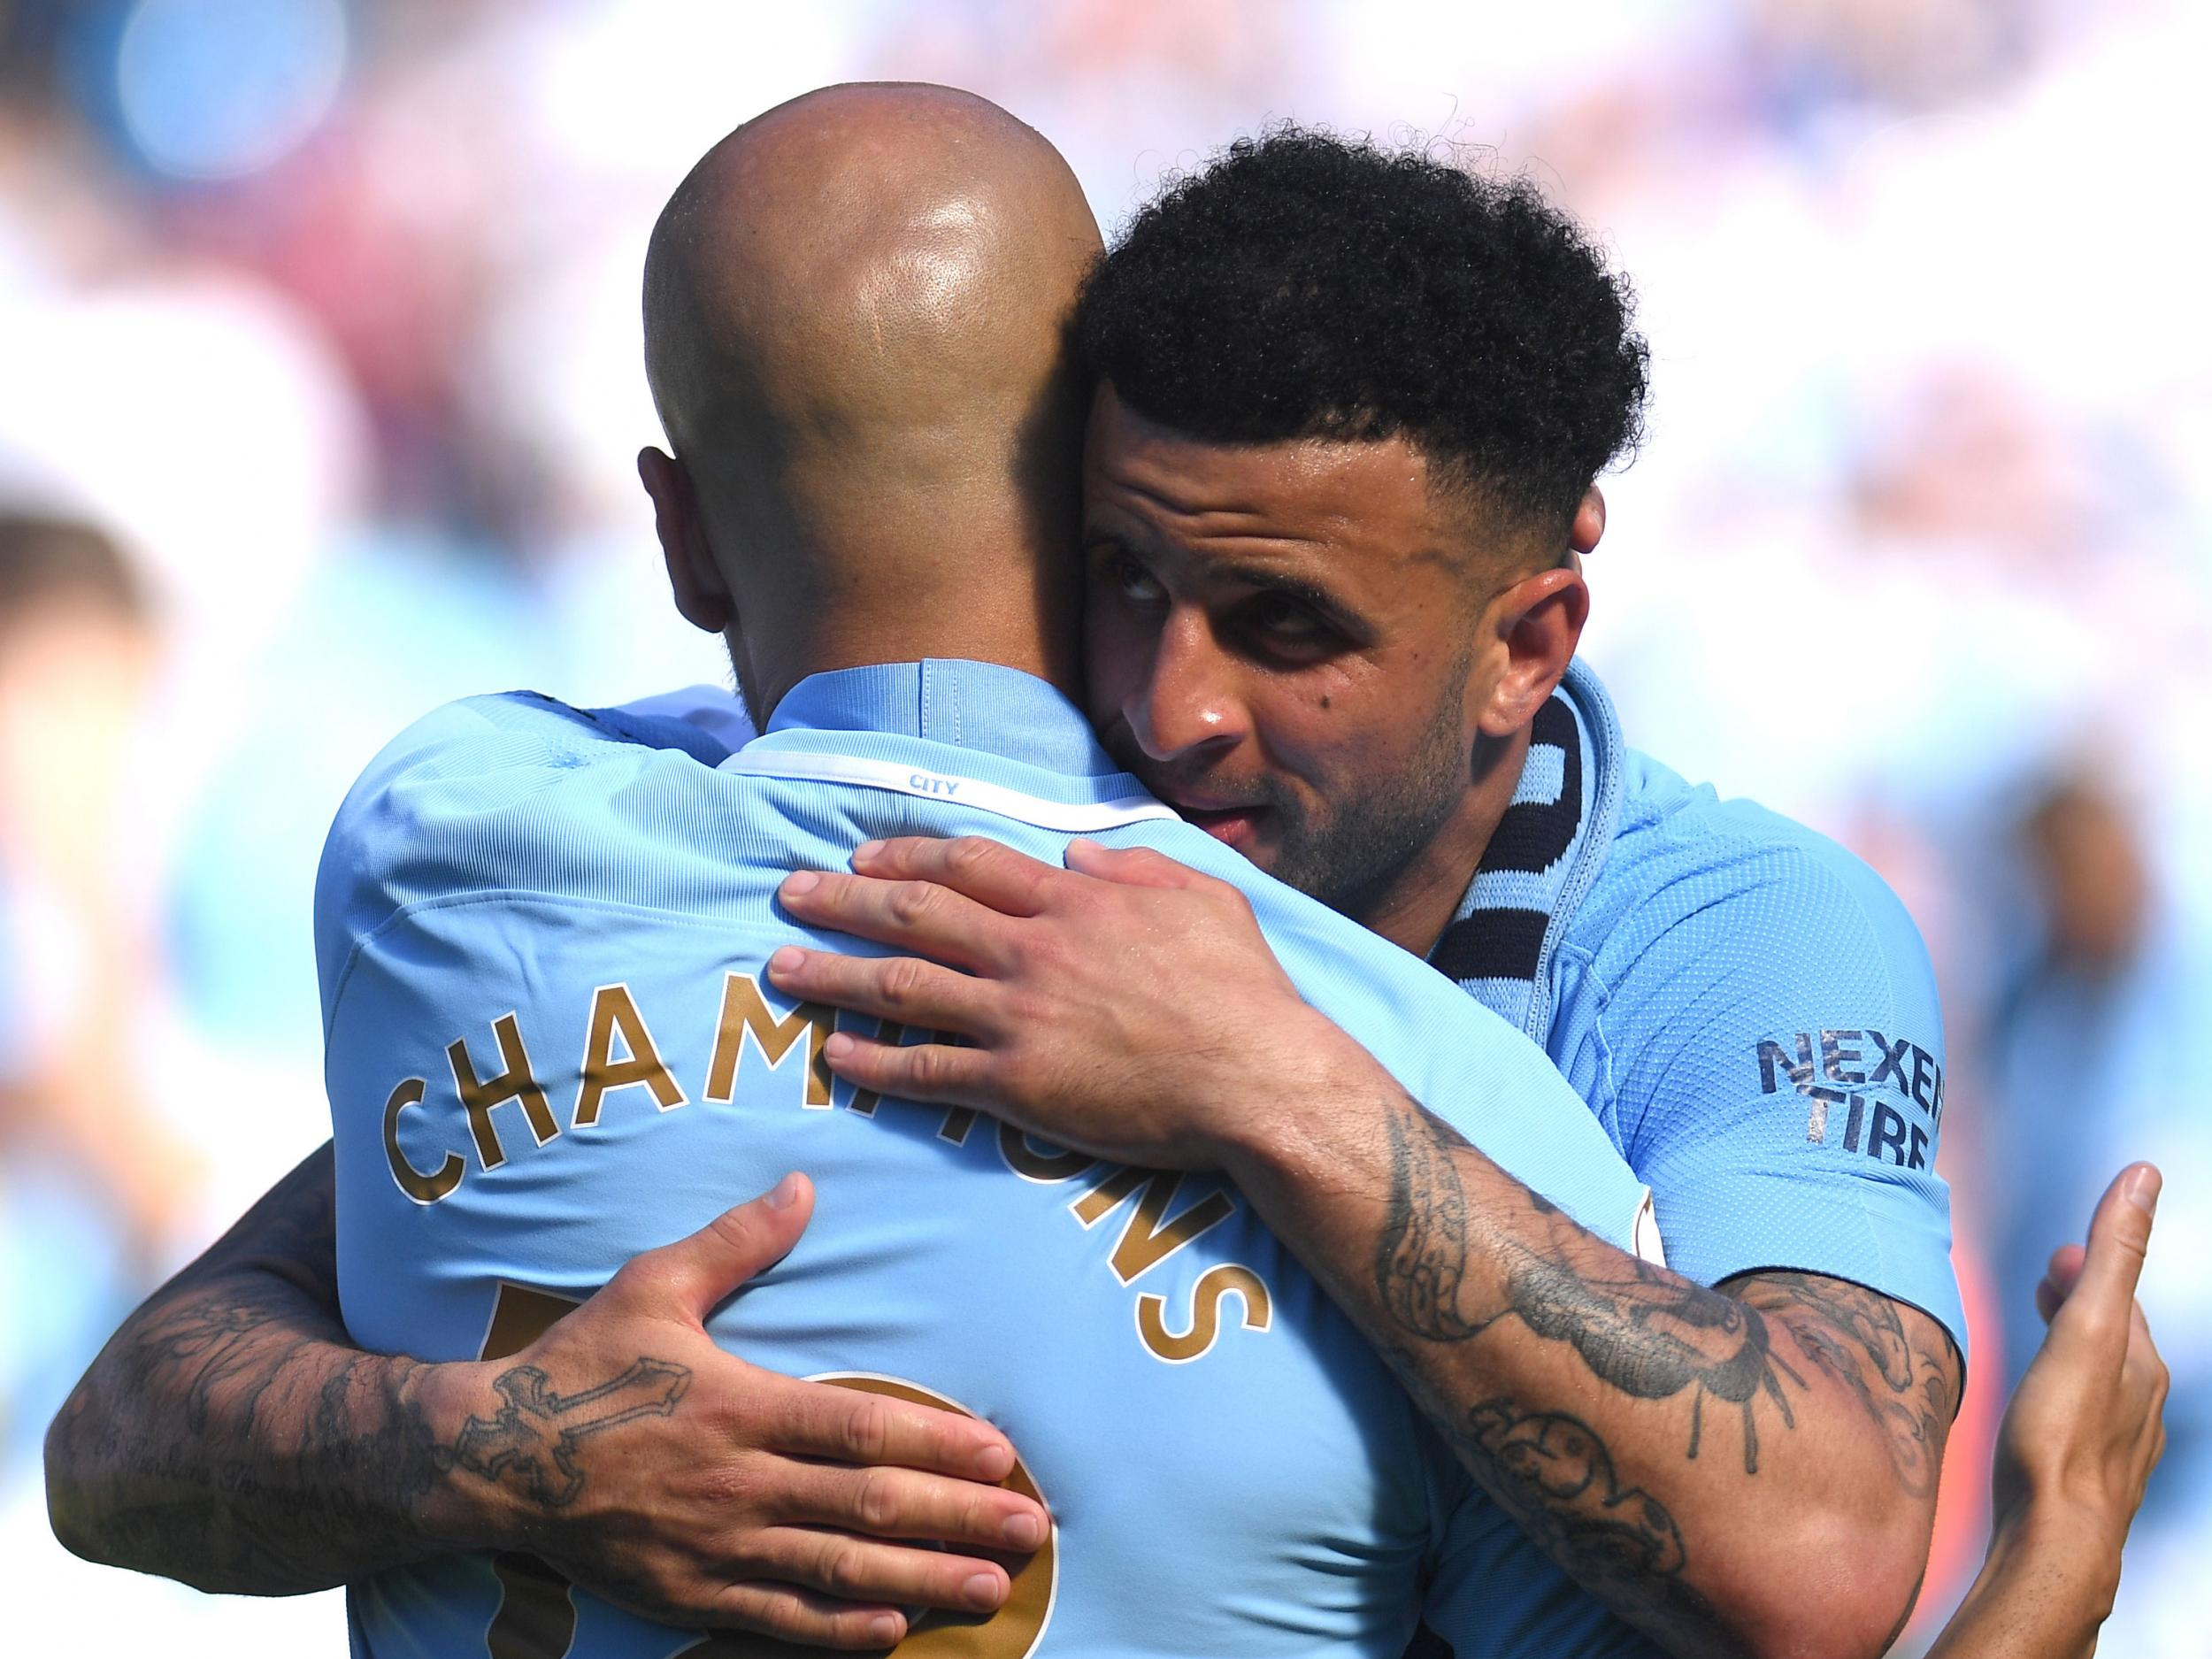 Manchester City want to dominate English football and can under Pep Guardiola, says Kyle Walker